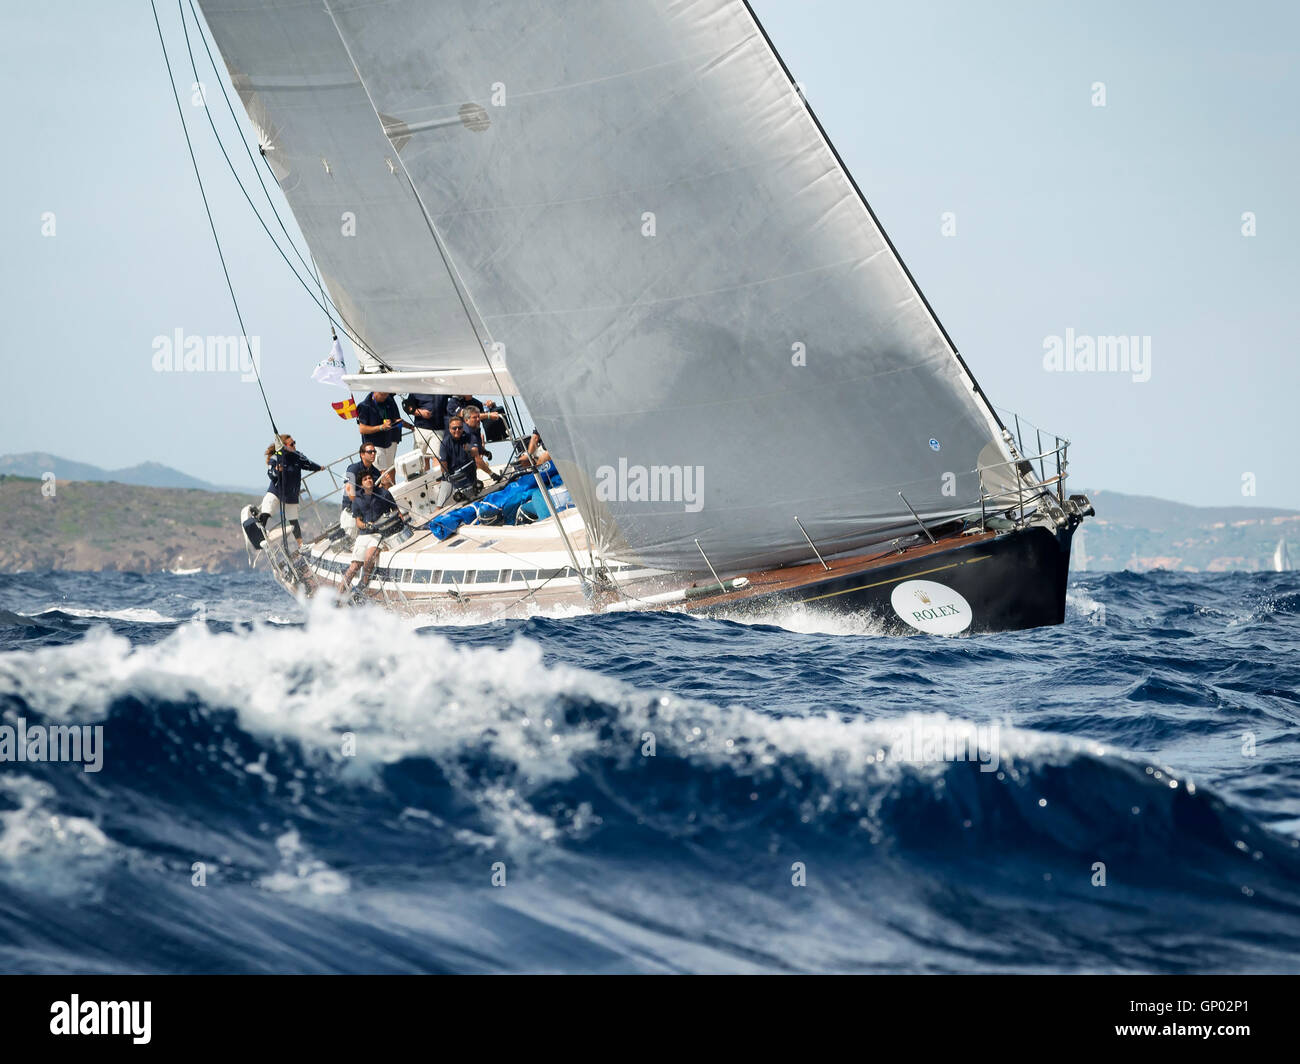 PORTO CERVO - 8 SEPTEMBER: team competing on Maxi Yacht Rolex Cup sail boat race in Sardinia, on September 8 2015 Stock Photo